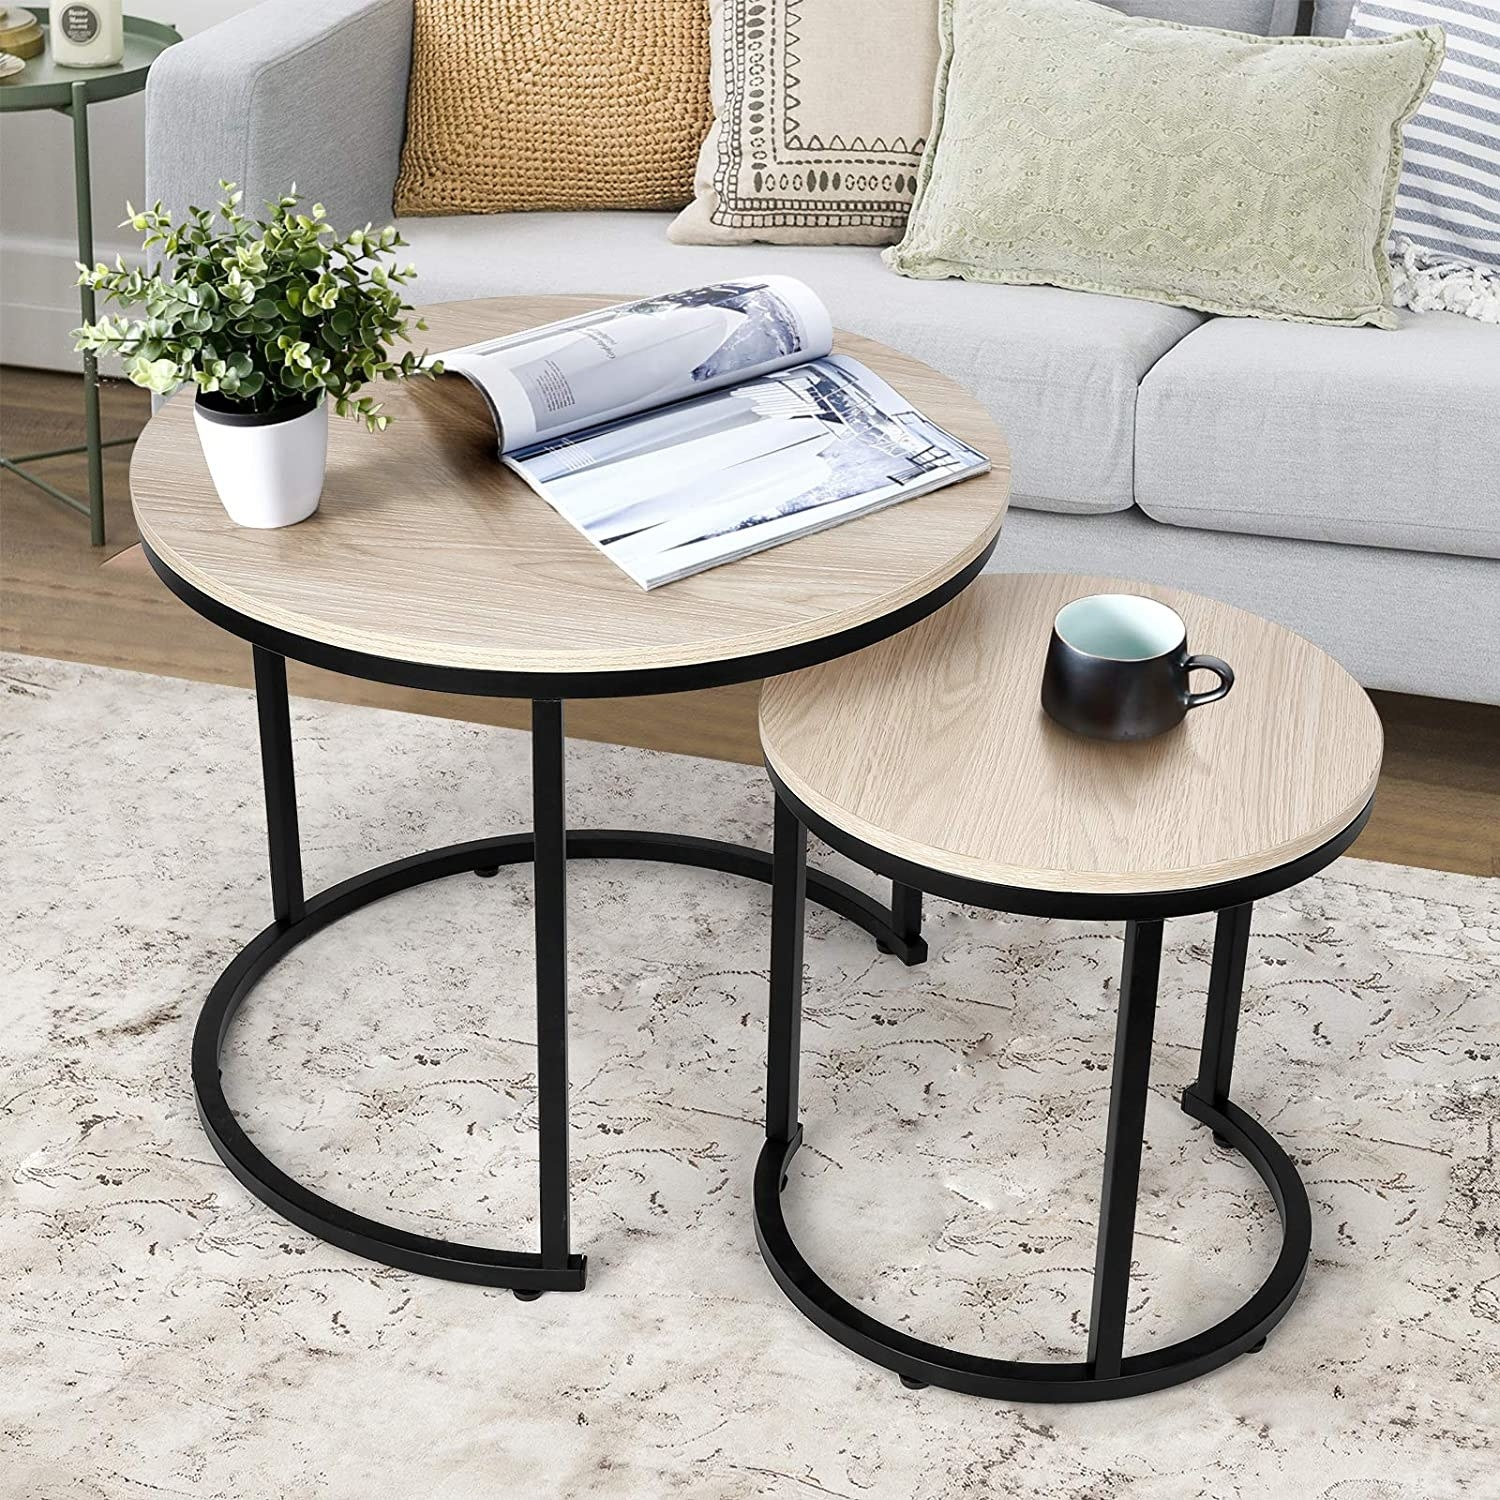 black and light wood nesting tables next to a gray couch